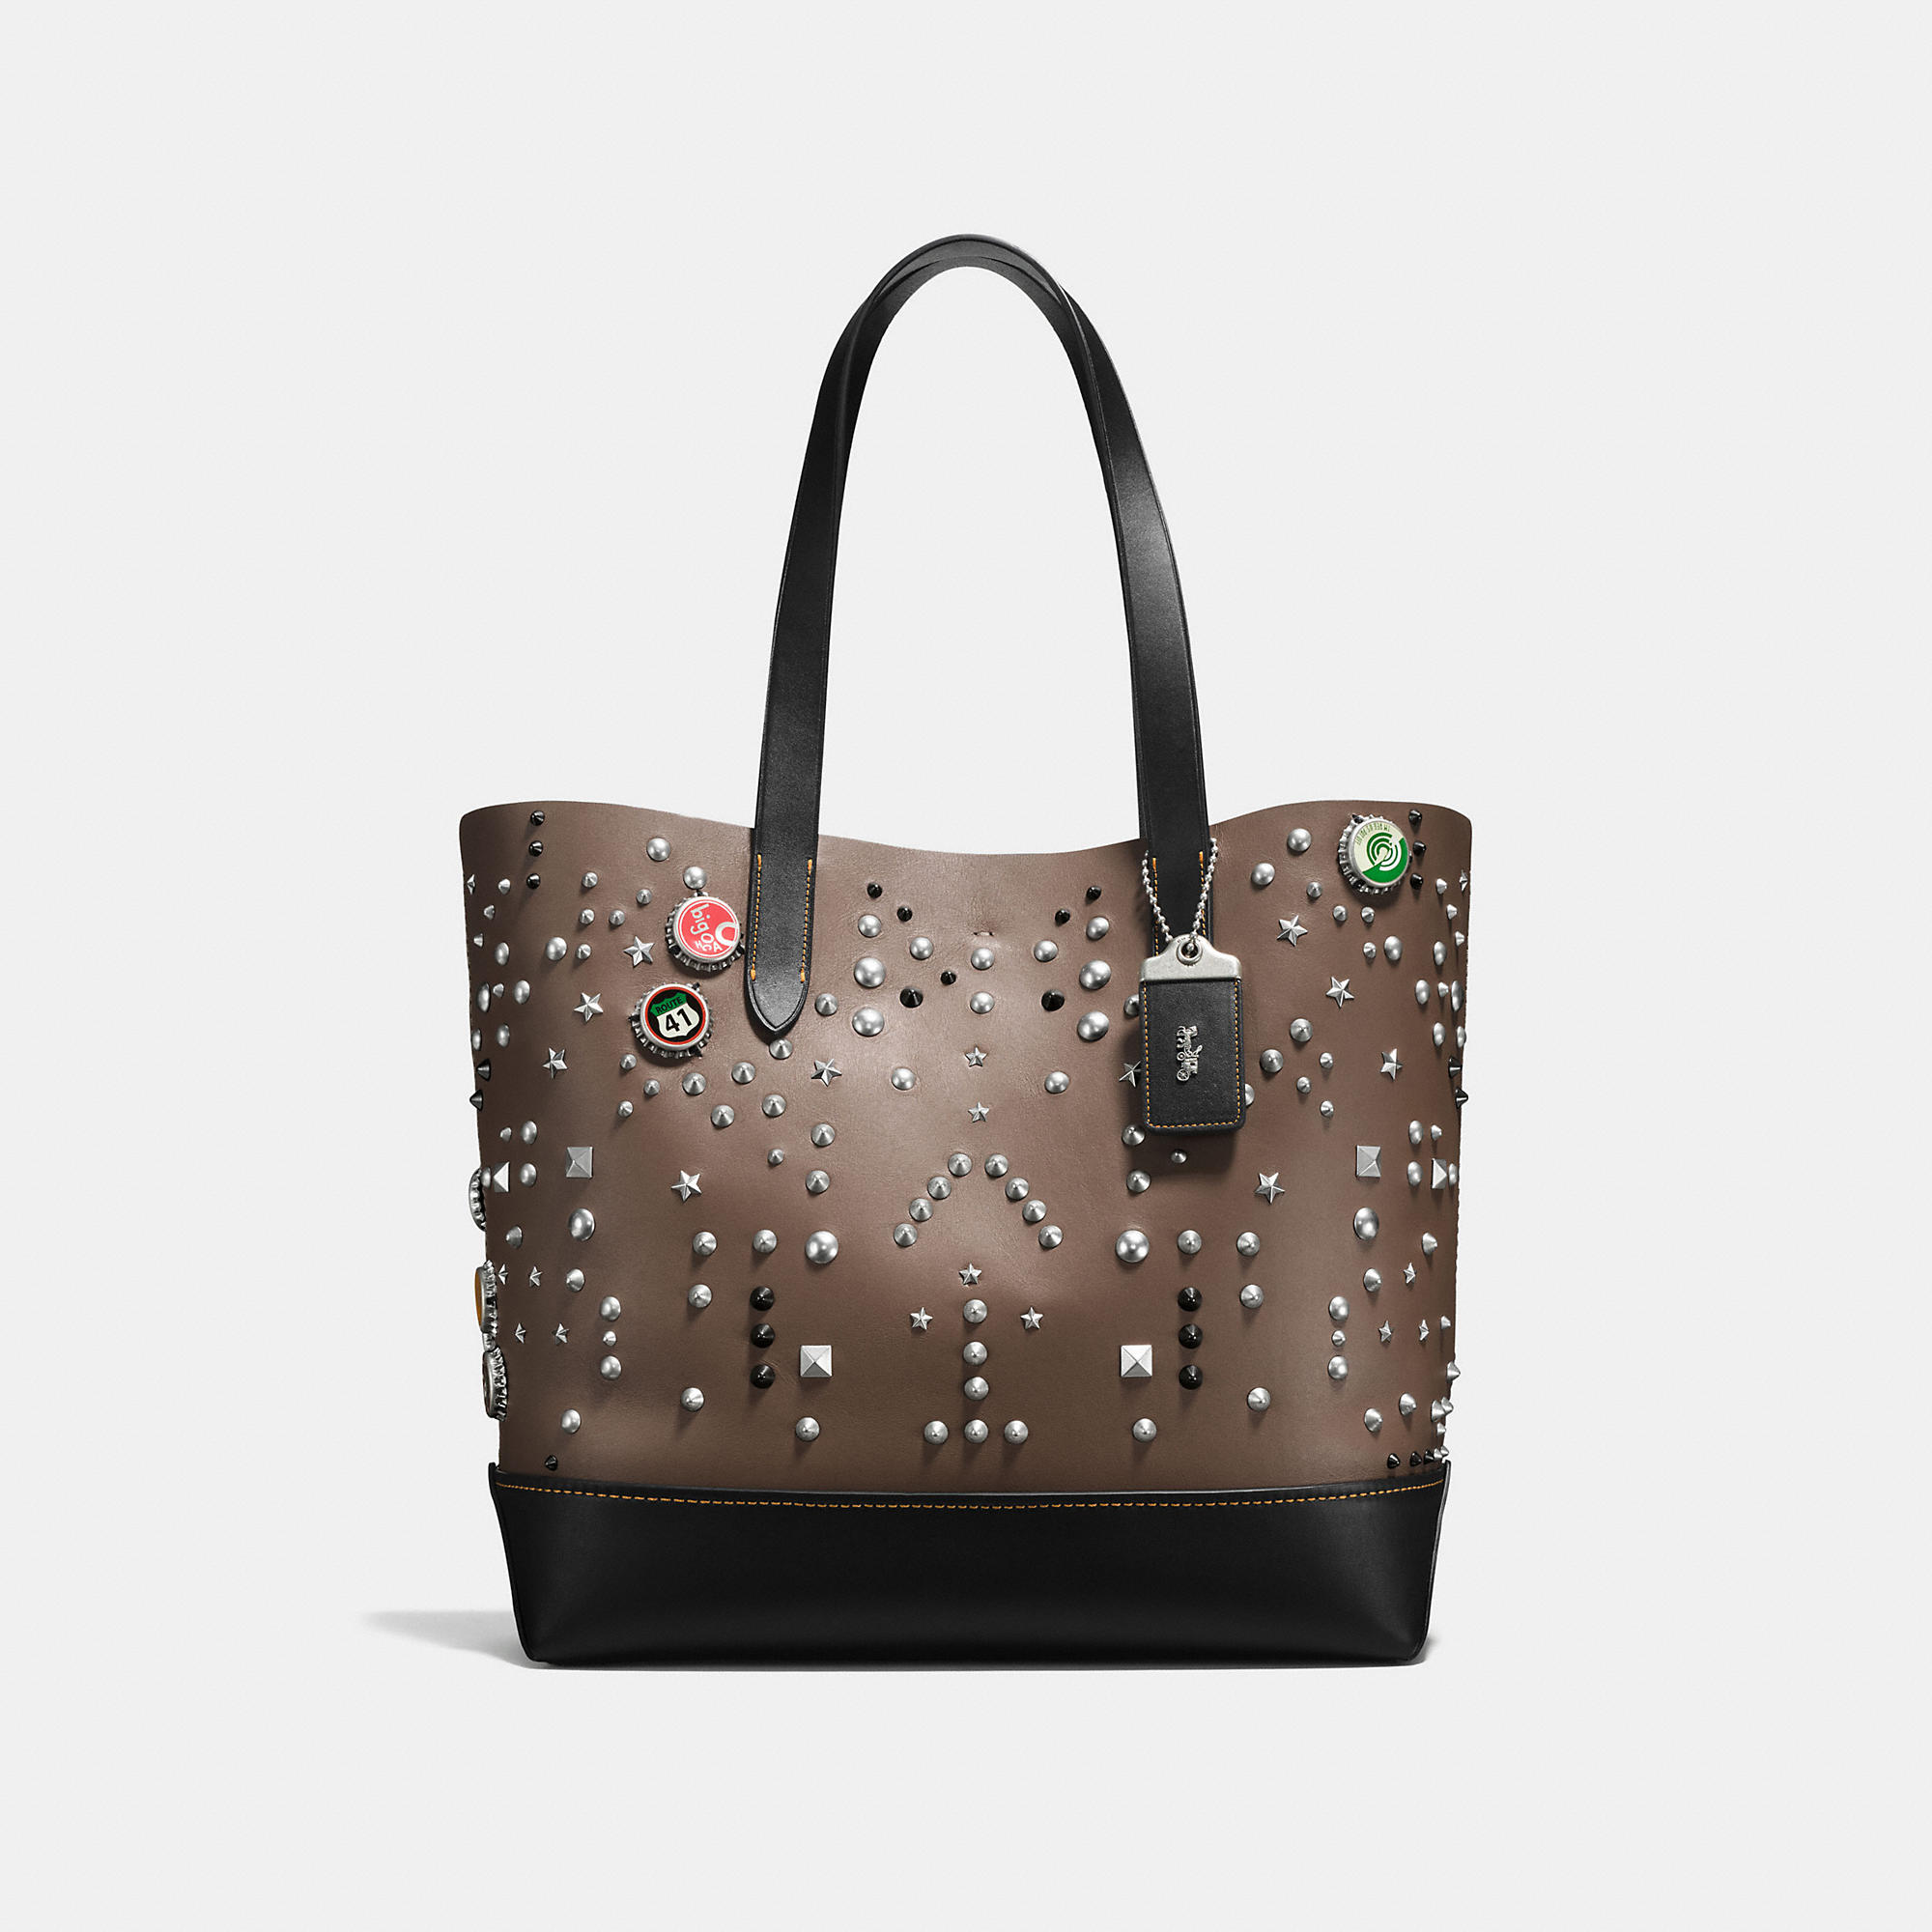 Coach Gotham Tote In Glovetanned Leather With Studs